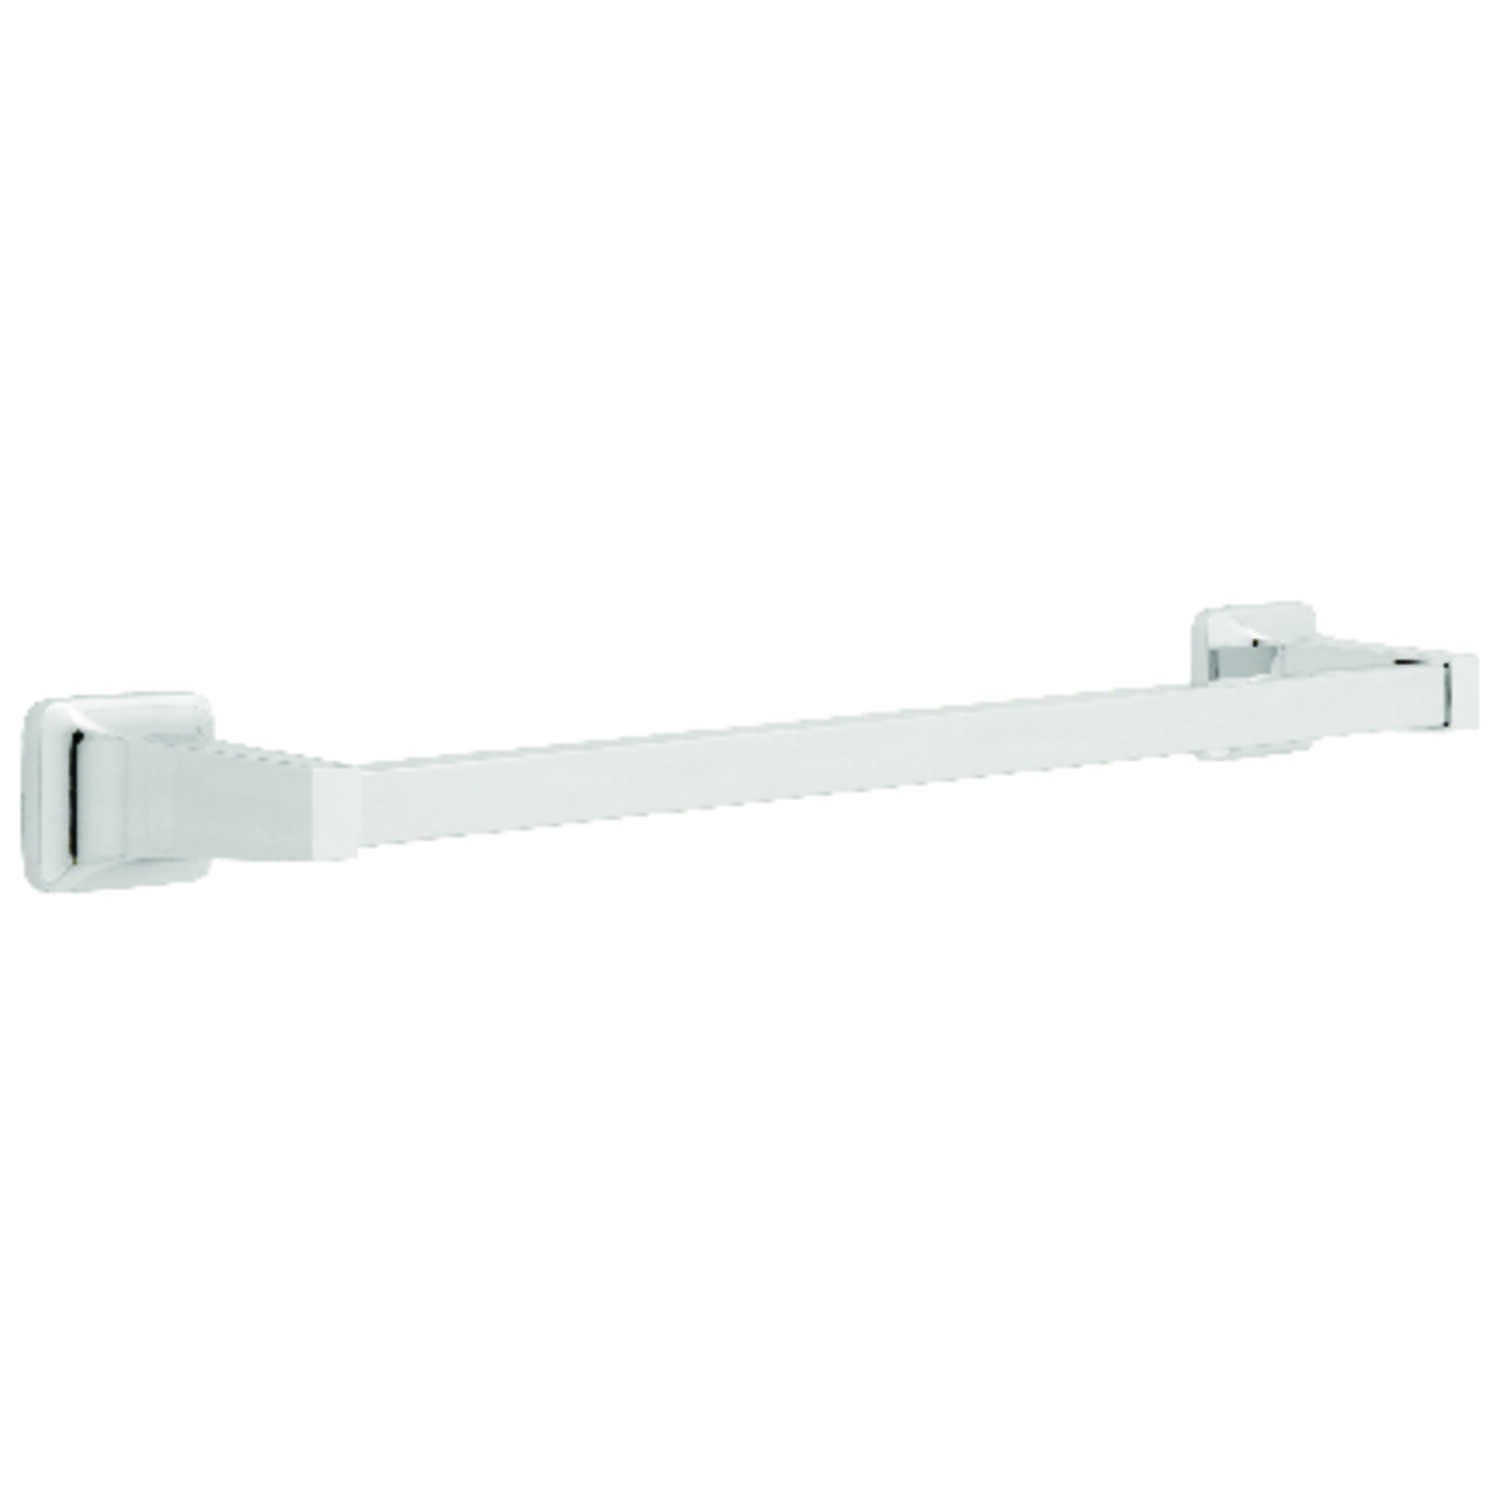 Franklin Brass  Futura  Chrome  Towel Bar  20.24 in. L Zinc